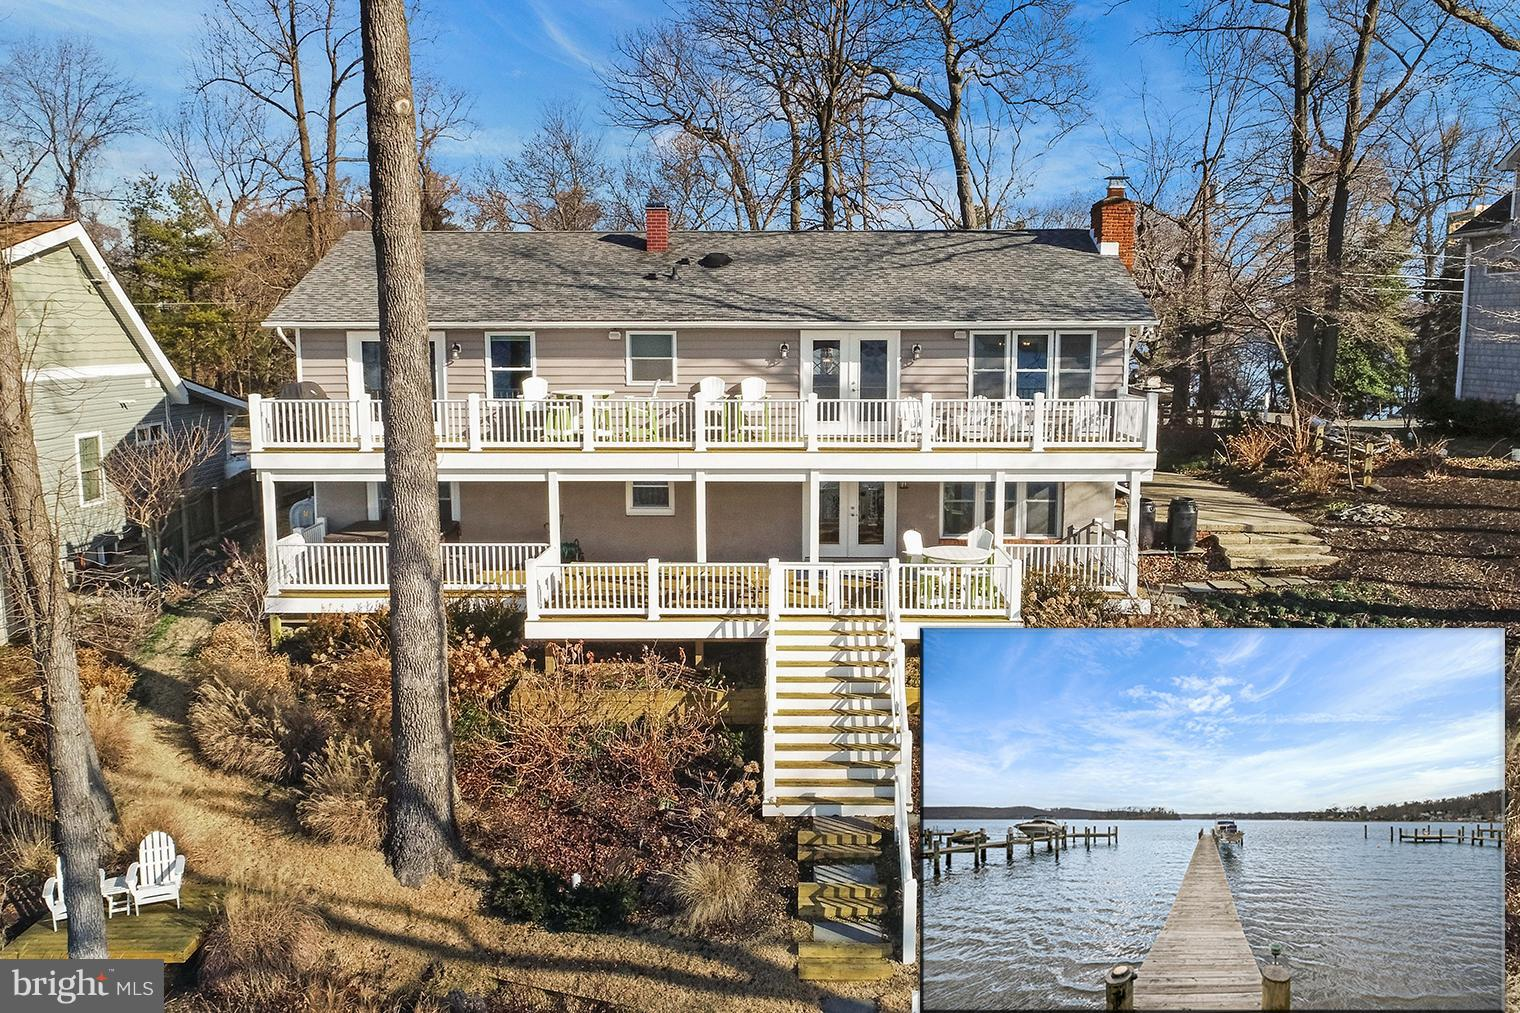 265 LONG POINT ROAD, CROWNSVILLE, MD 21032